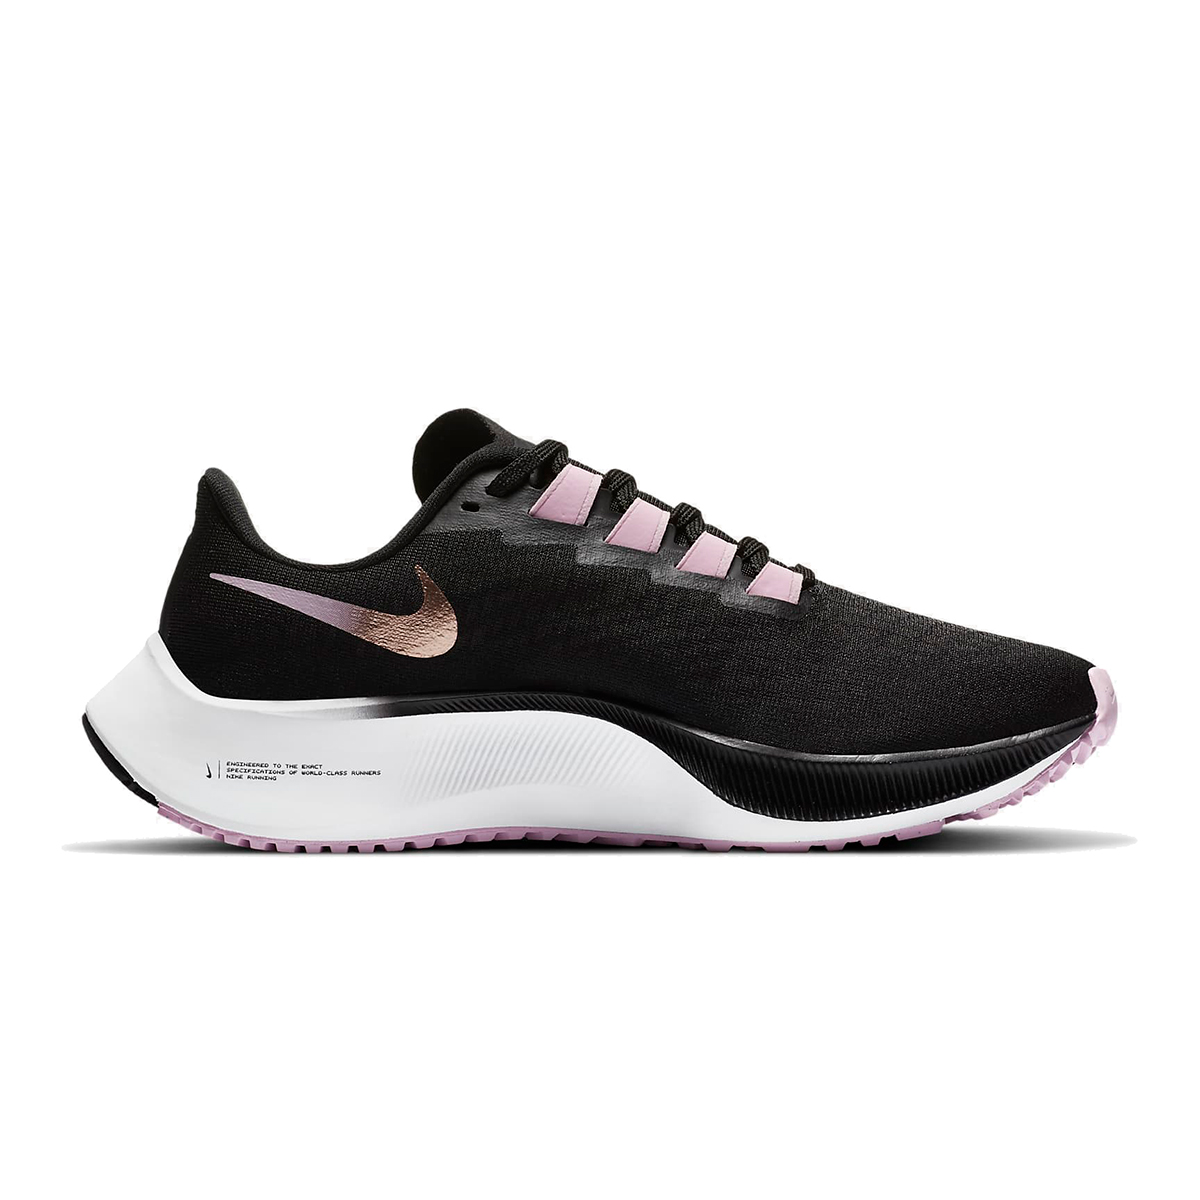 Women's Nike Air Zoom Pegasus 37 Running Shoe - Color: Black/Light Arctic Pink/White/Metallic Red Bronze - Size: 6 - Width: Regular, Black/Light Arctic Pink/White/Metallic Red Bronze, large, image 1